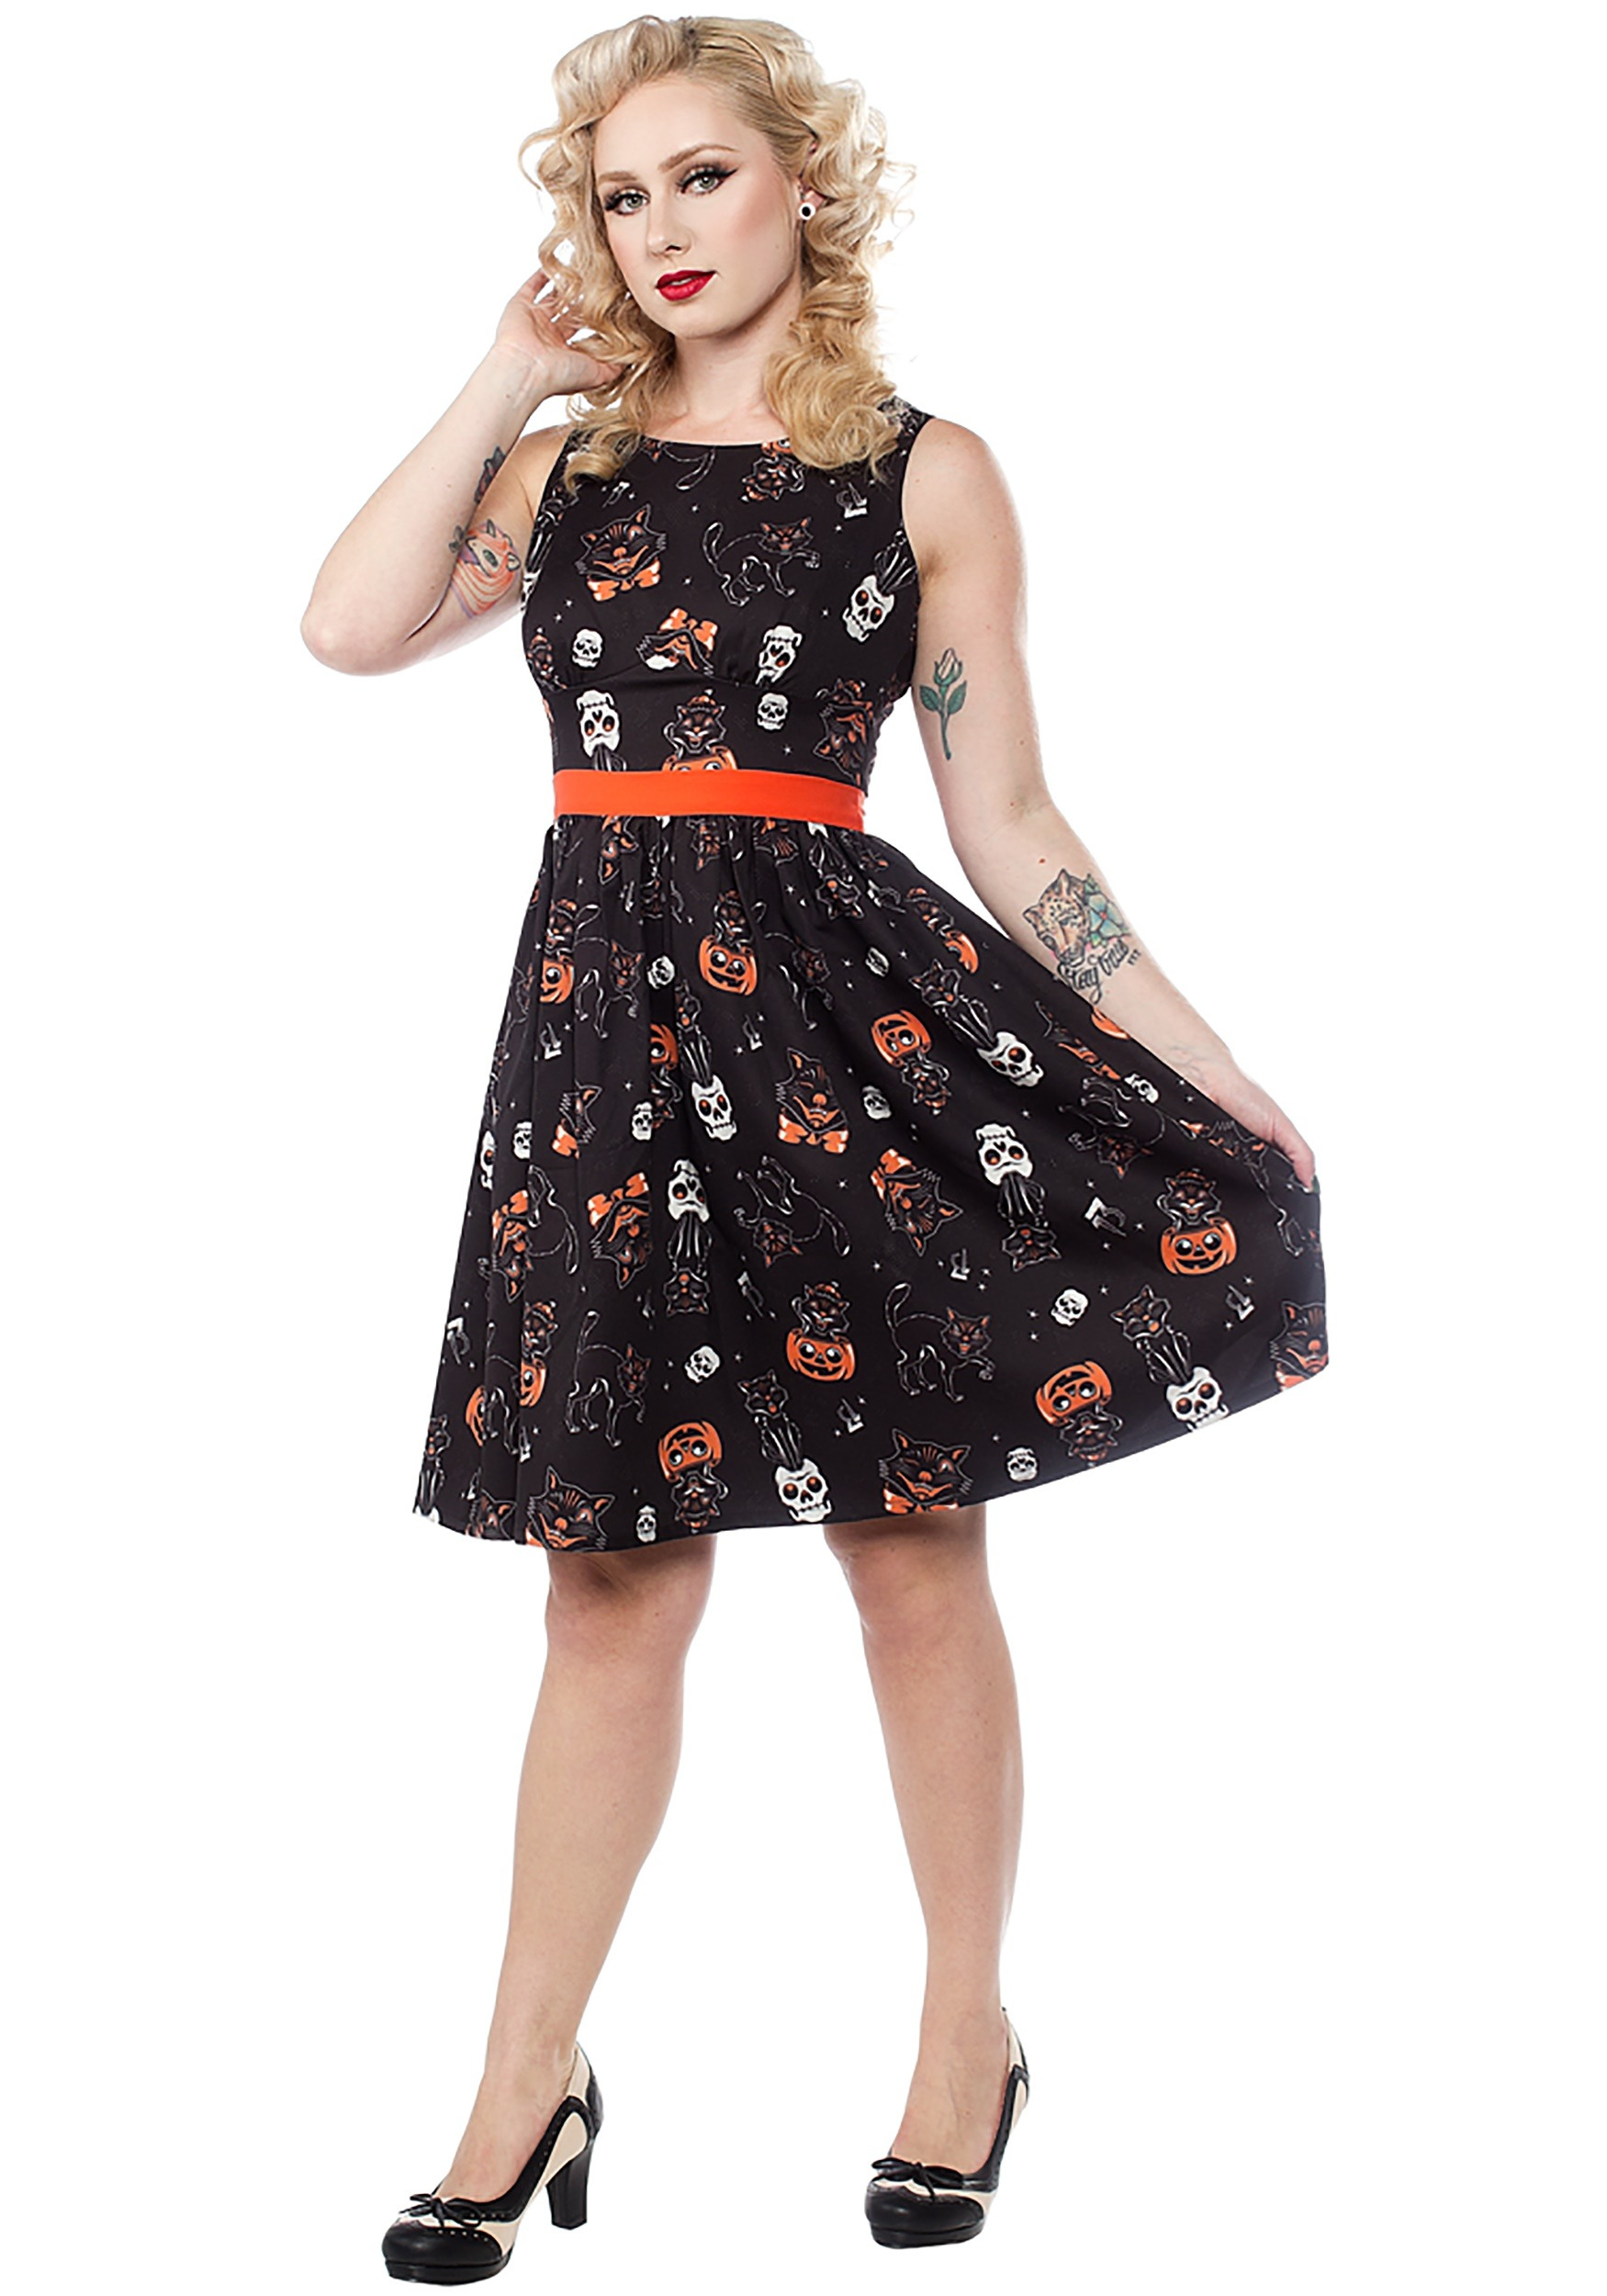 Cat Womens Adult Black Fit And Flare Halloween Animal Costume Dress